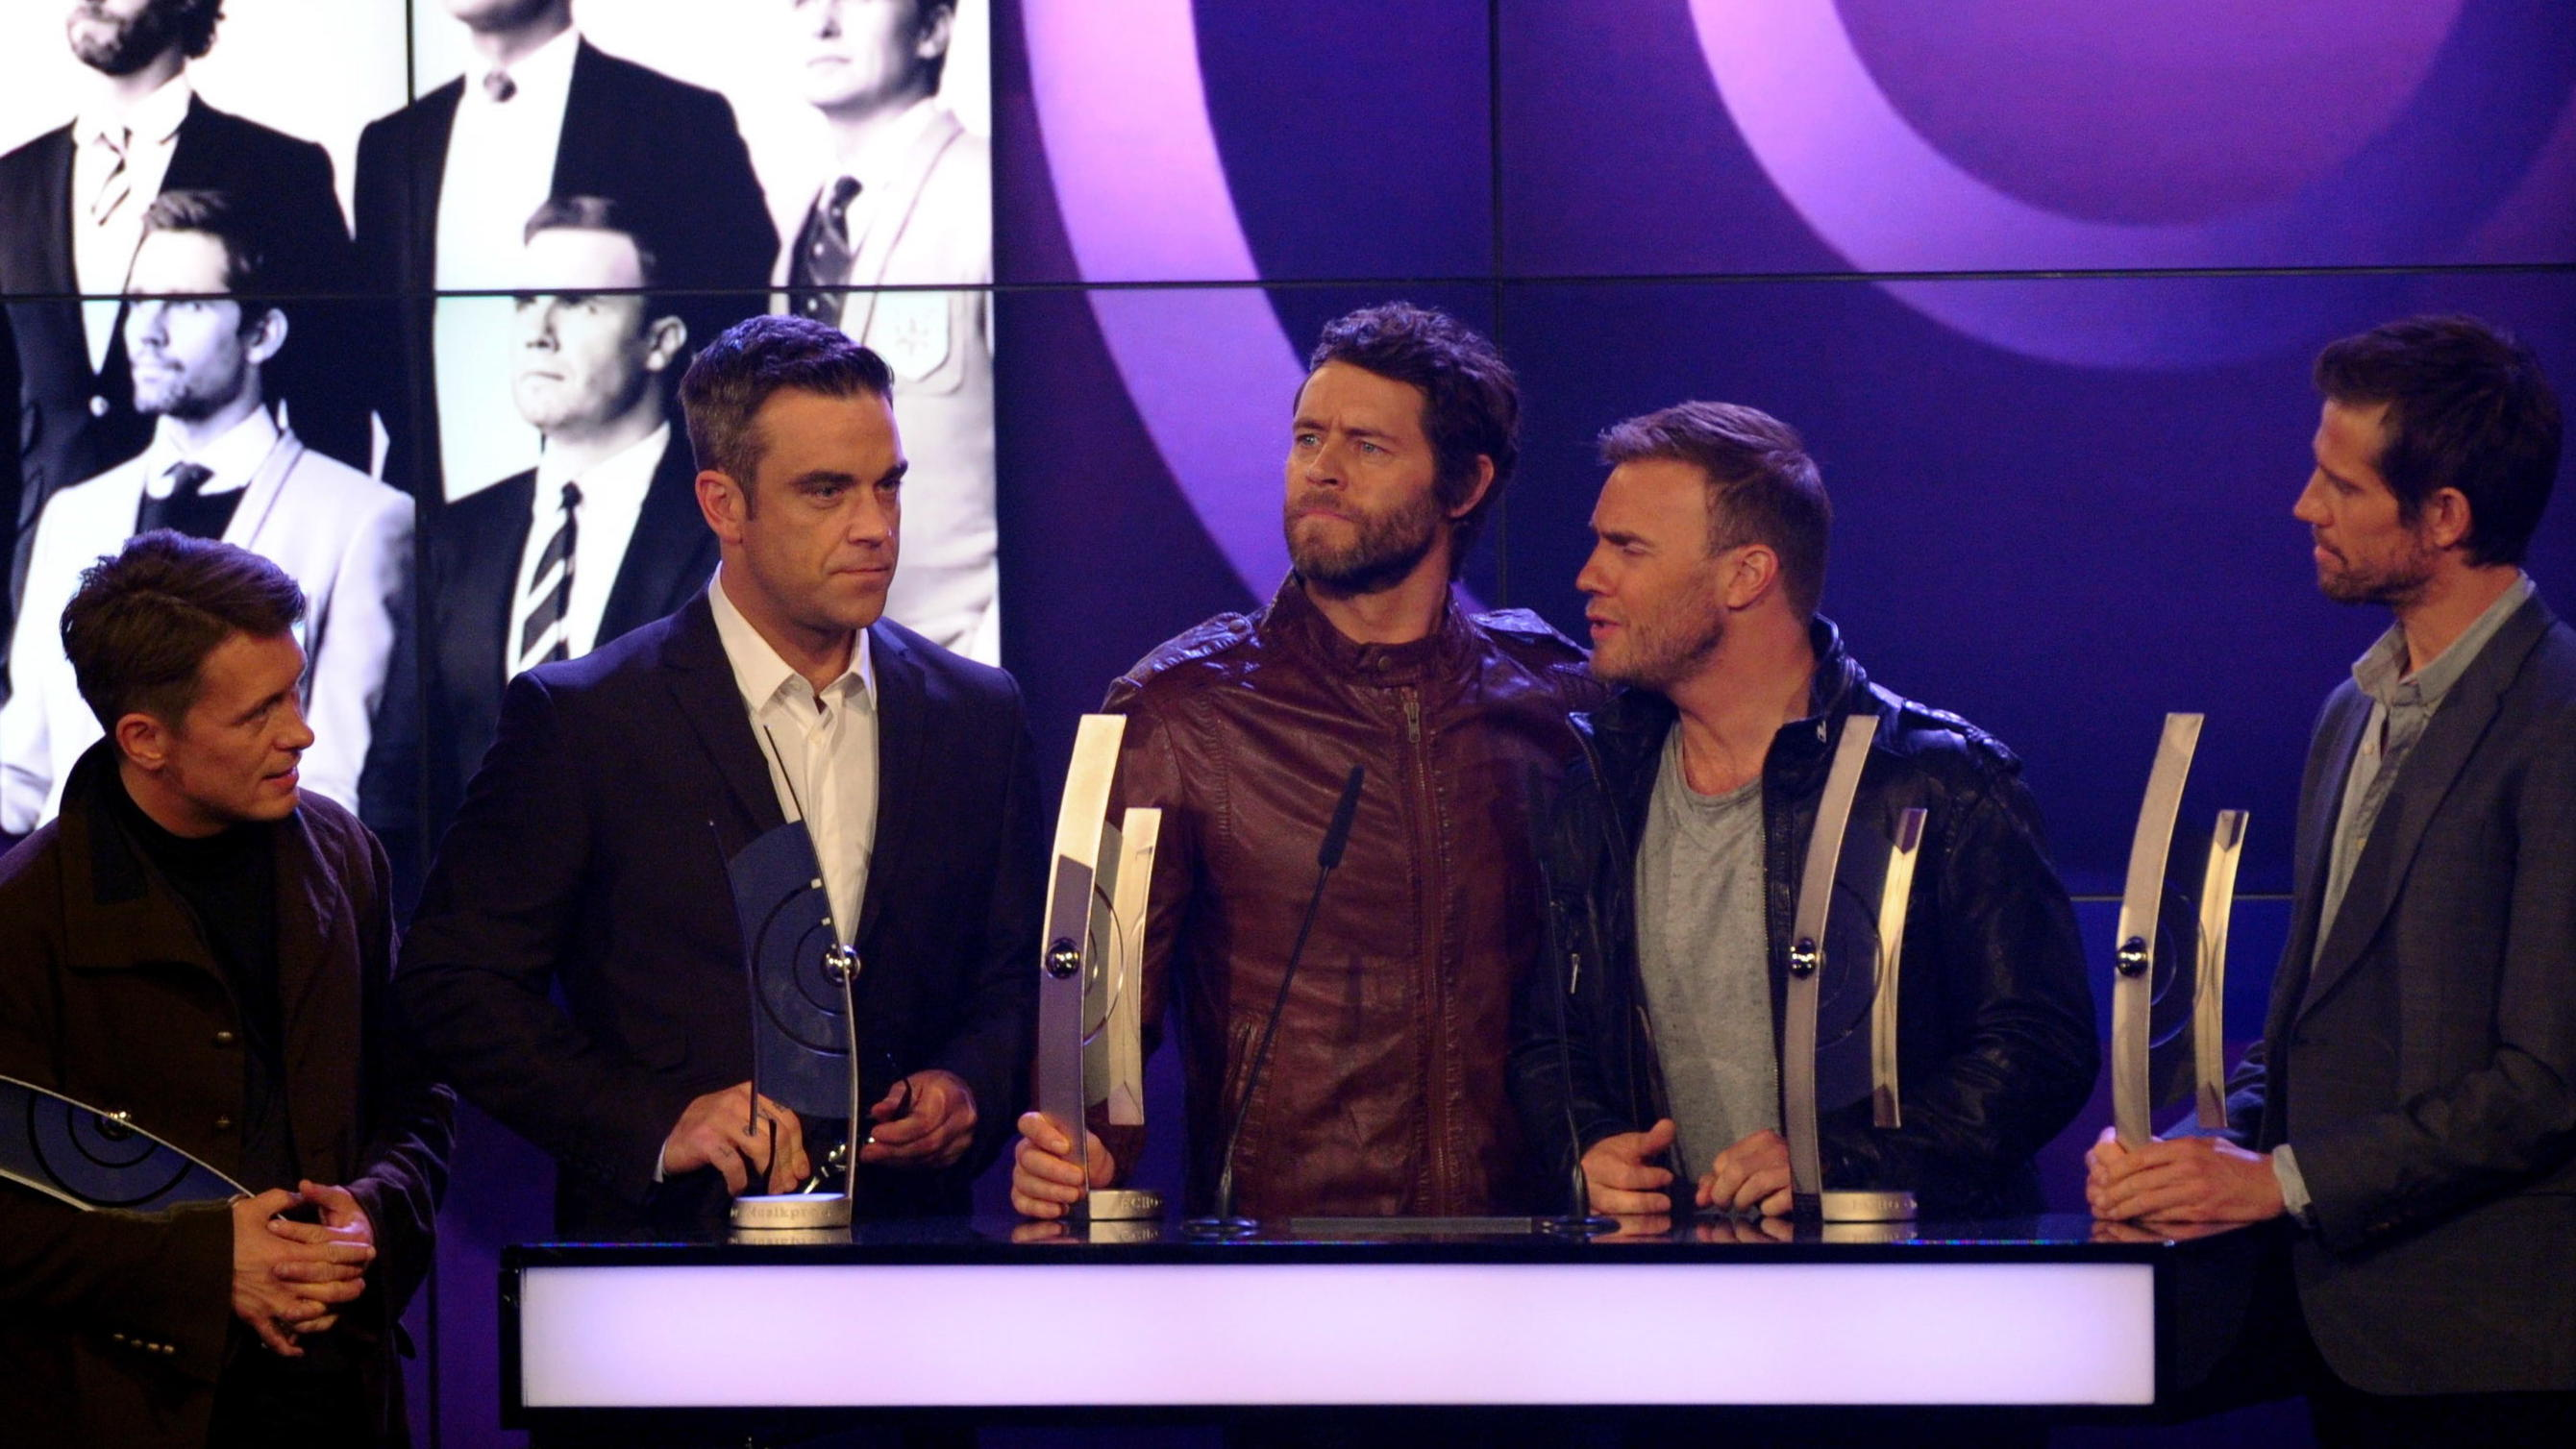 Take That 2011 wiedervereint mit allen fünf Bandmitgliedern: v.l.n.r Mark Owen, Robbie Williams, Howard Donald, Gary Barlow und Jason Orange.